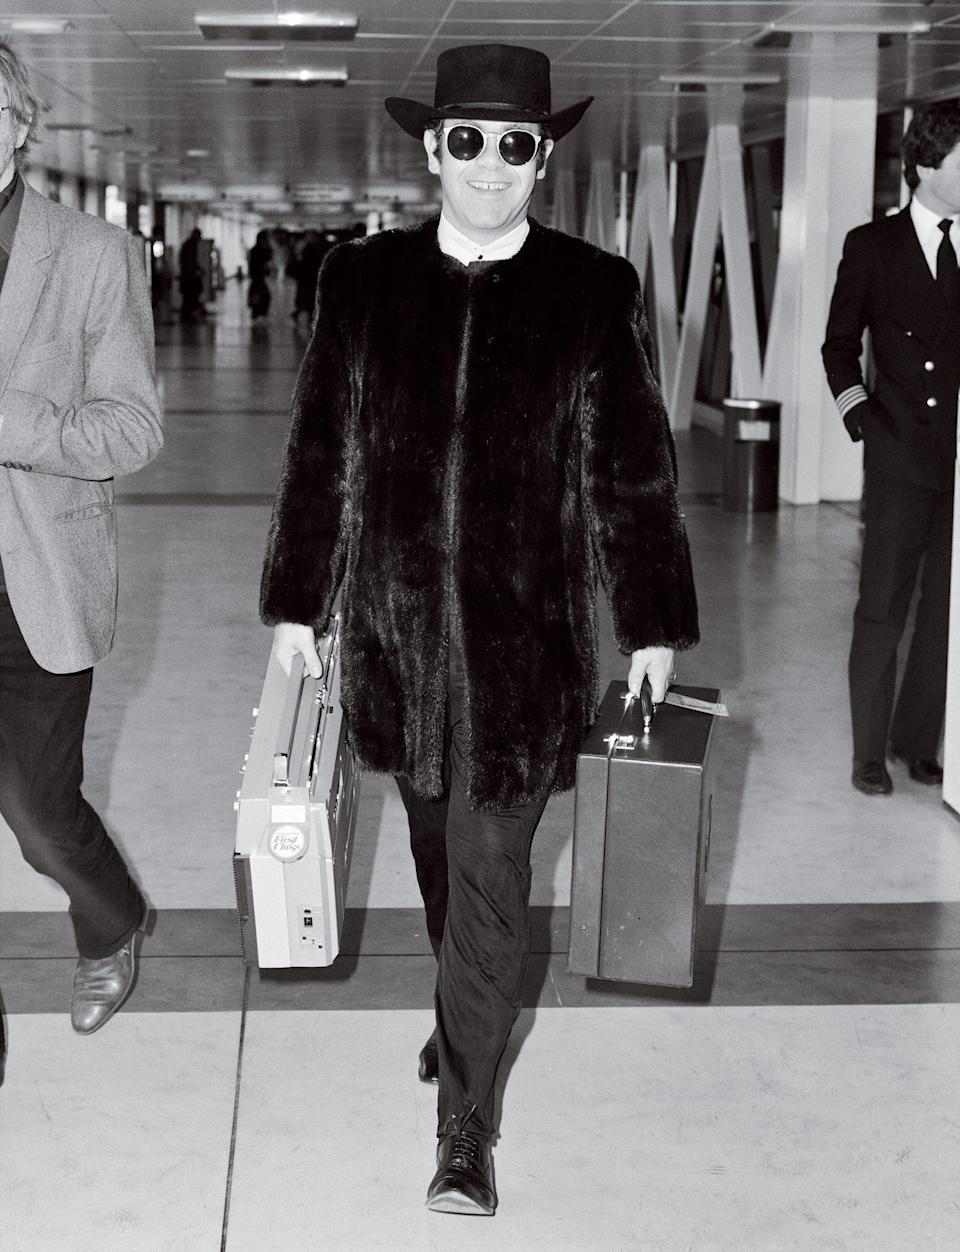 <p>The Rocket Man accessorized with a boom box en route to the Concorde (his preferred method of crossing the Atlantic until the planes were retired in 2003) for a flight from London's Heathrow to N.Y.C.</p>